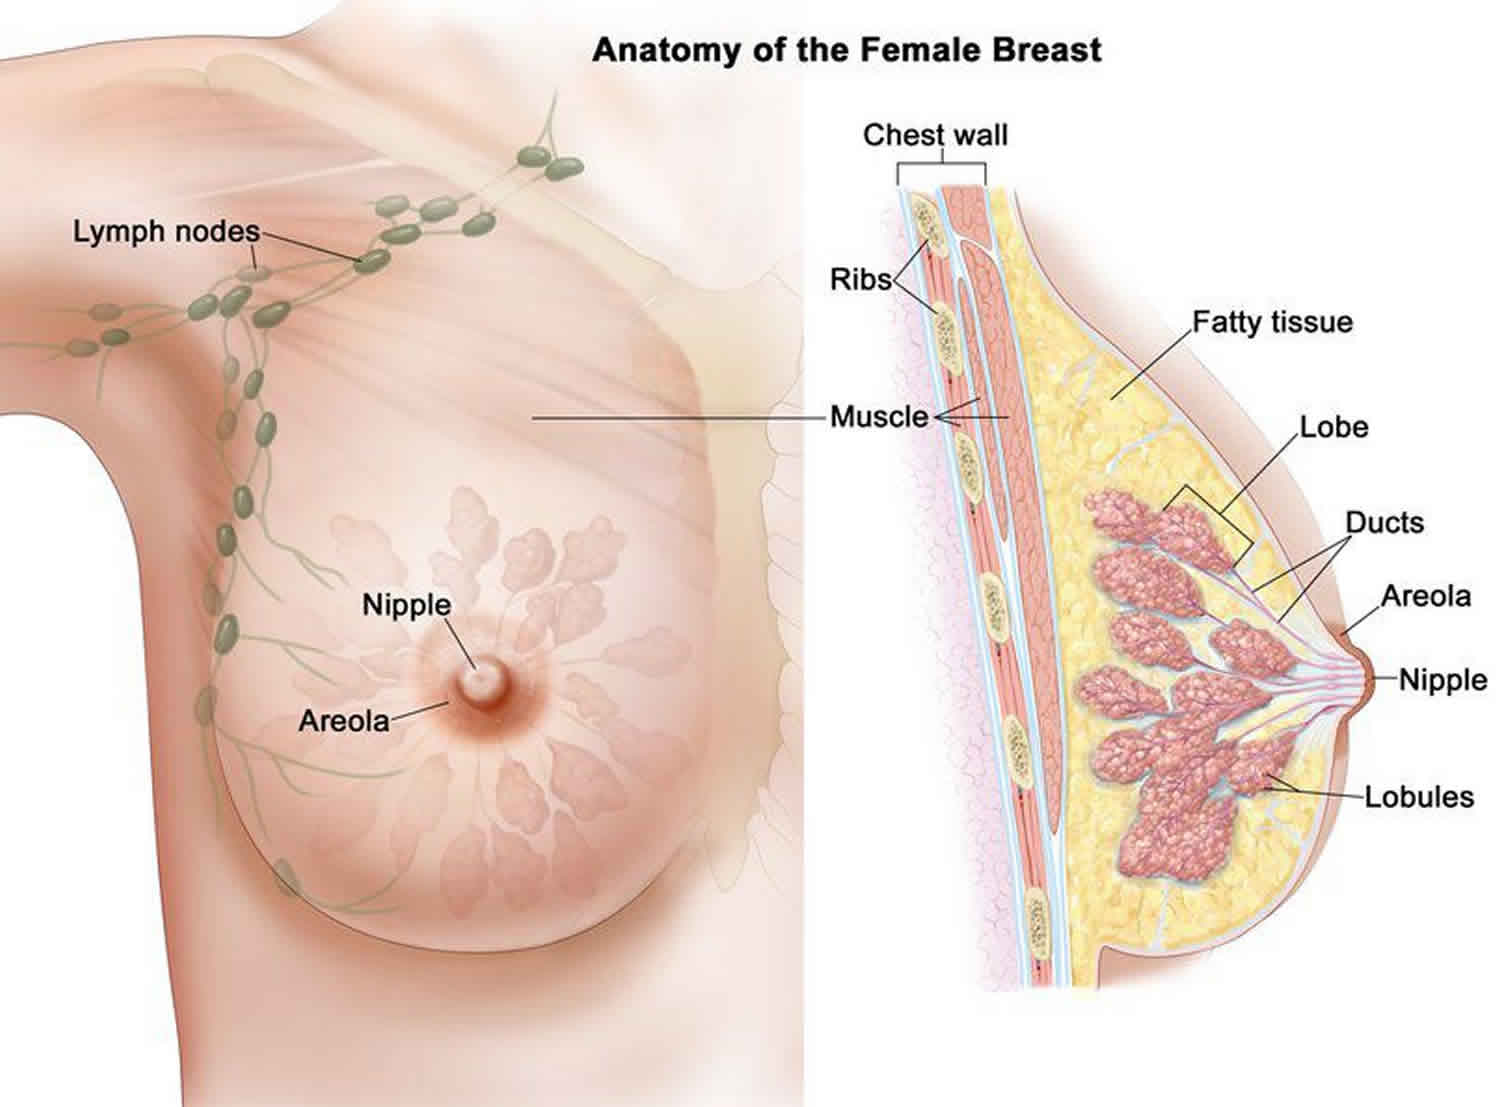 is intraductal papilloma breast cancer